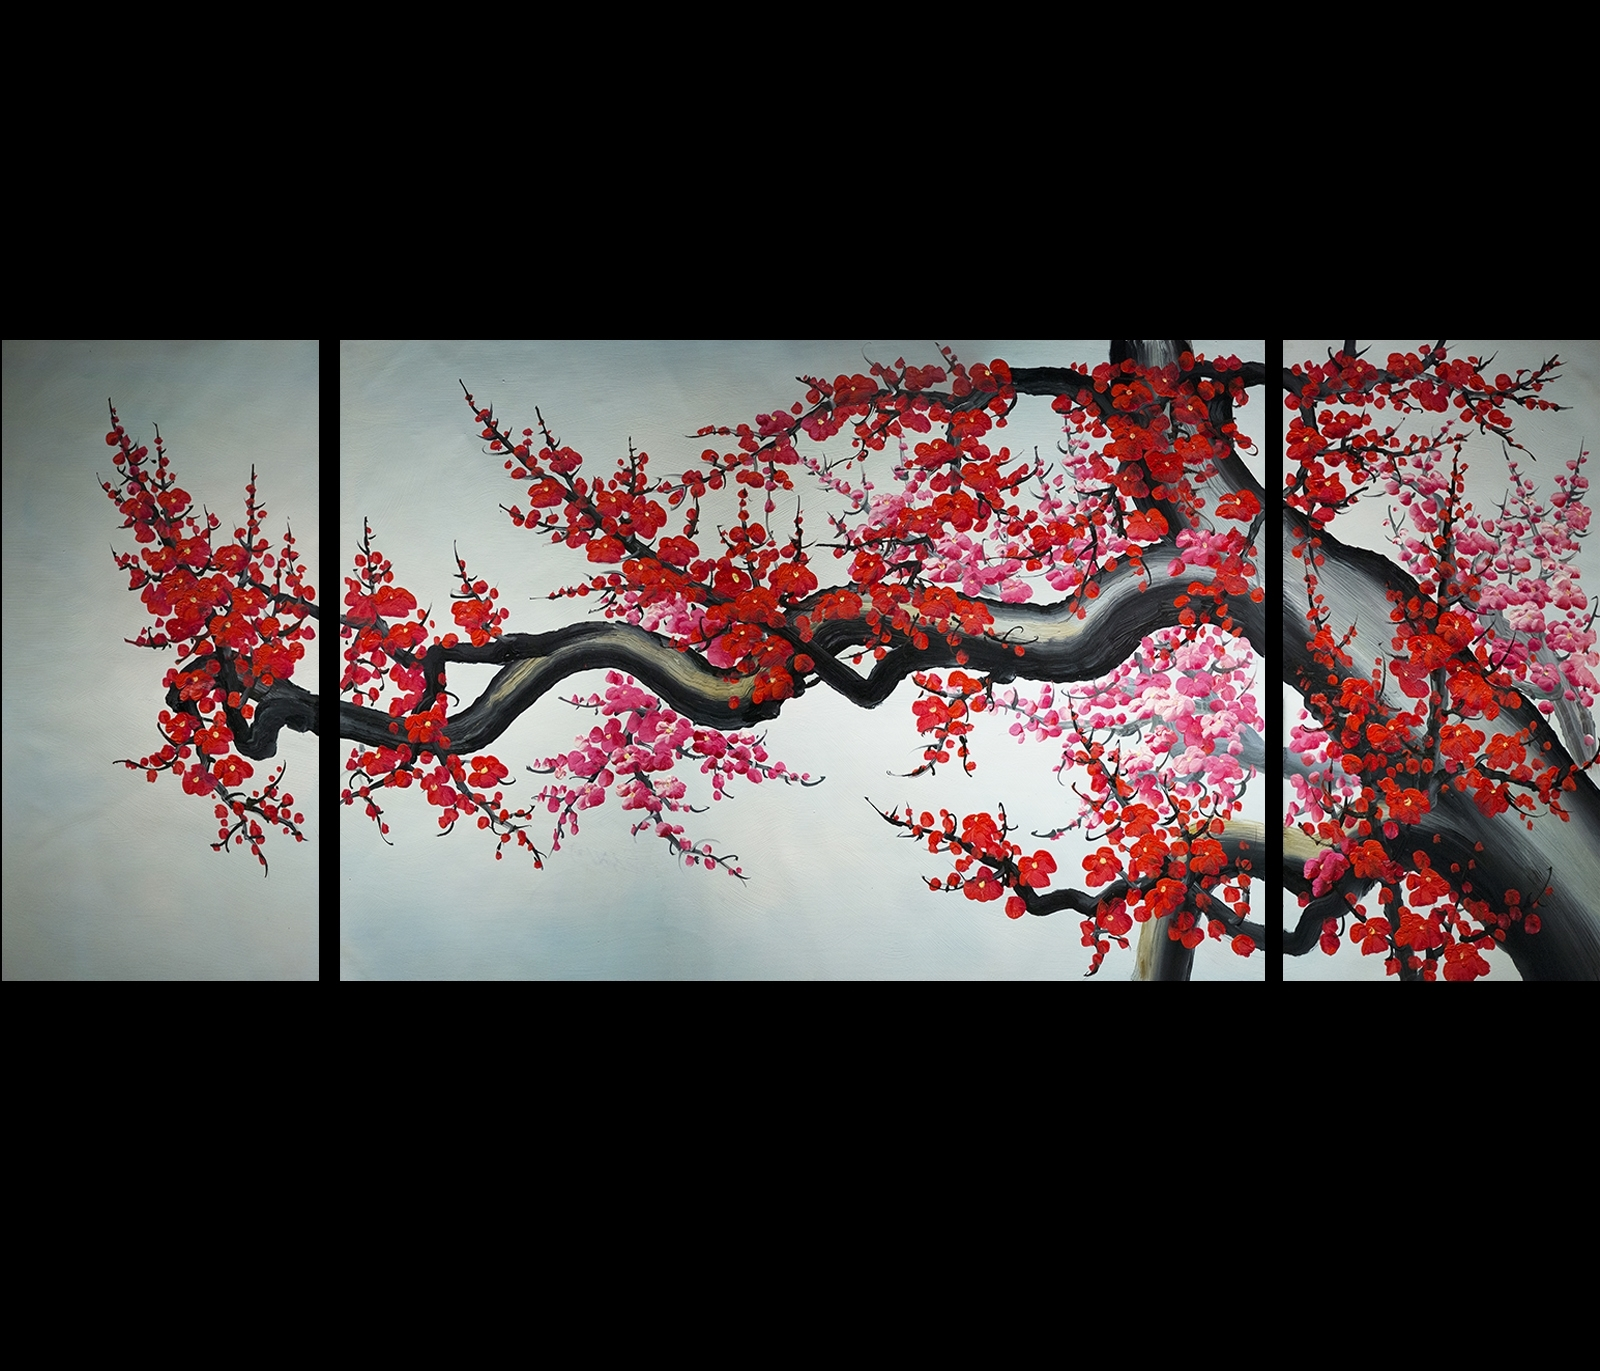 Cherry Blossom Painting | Feng Shui | Pinterest | Cherry Blossom Intended For Most Popular Cherry Blossom Oil Painting Modern Abstract Wall Art (View 9 of 20)